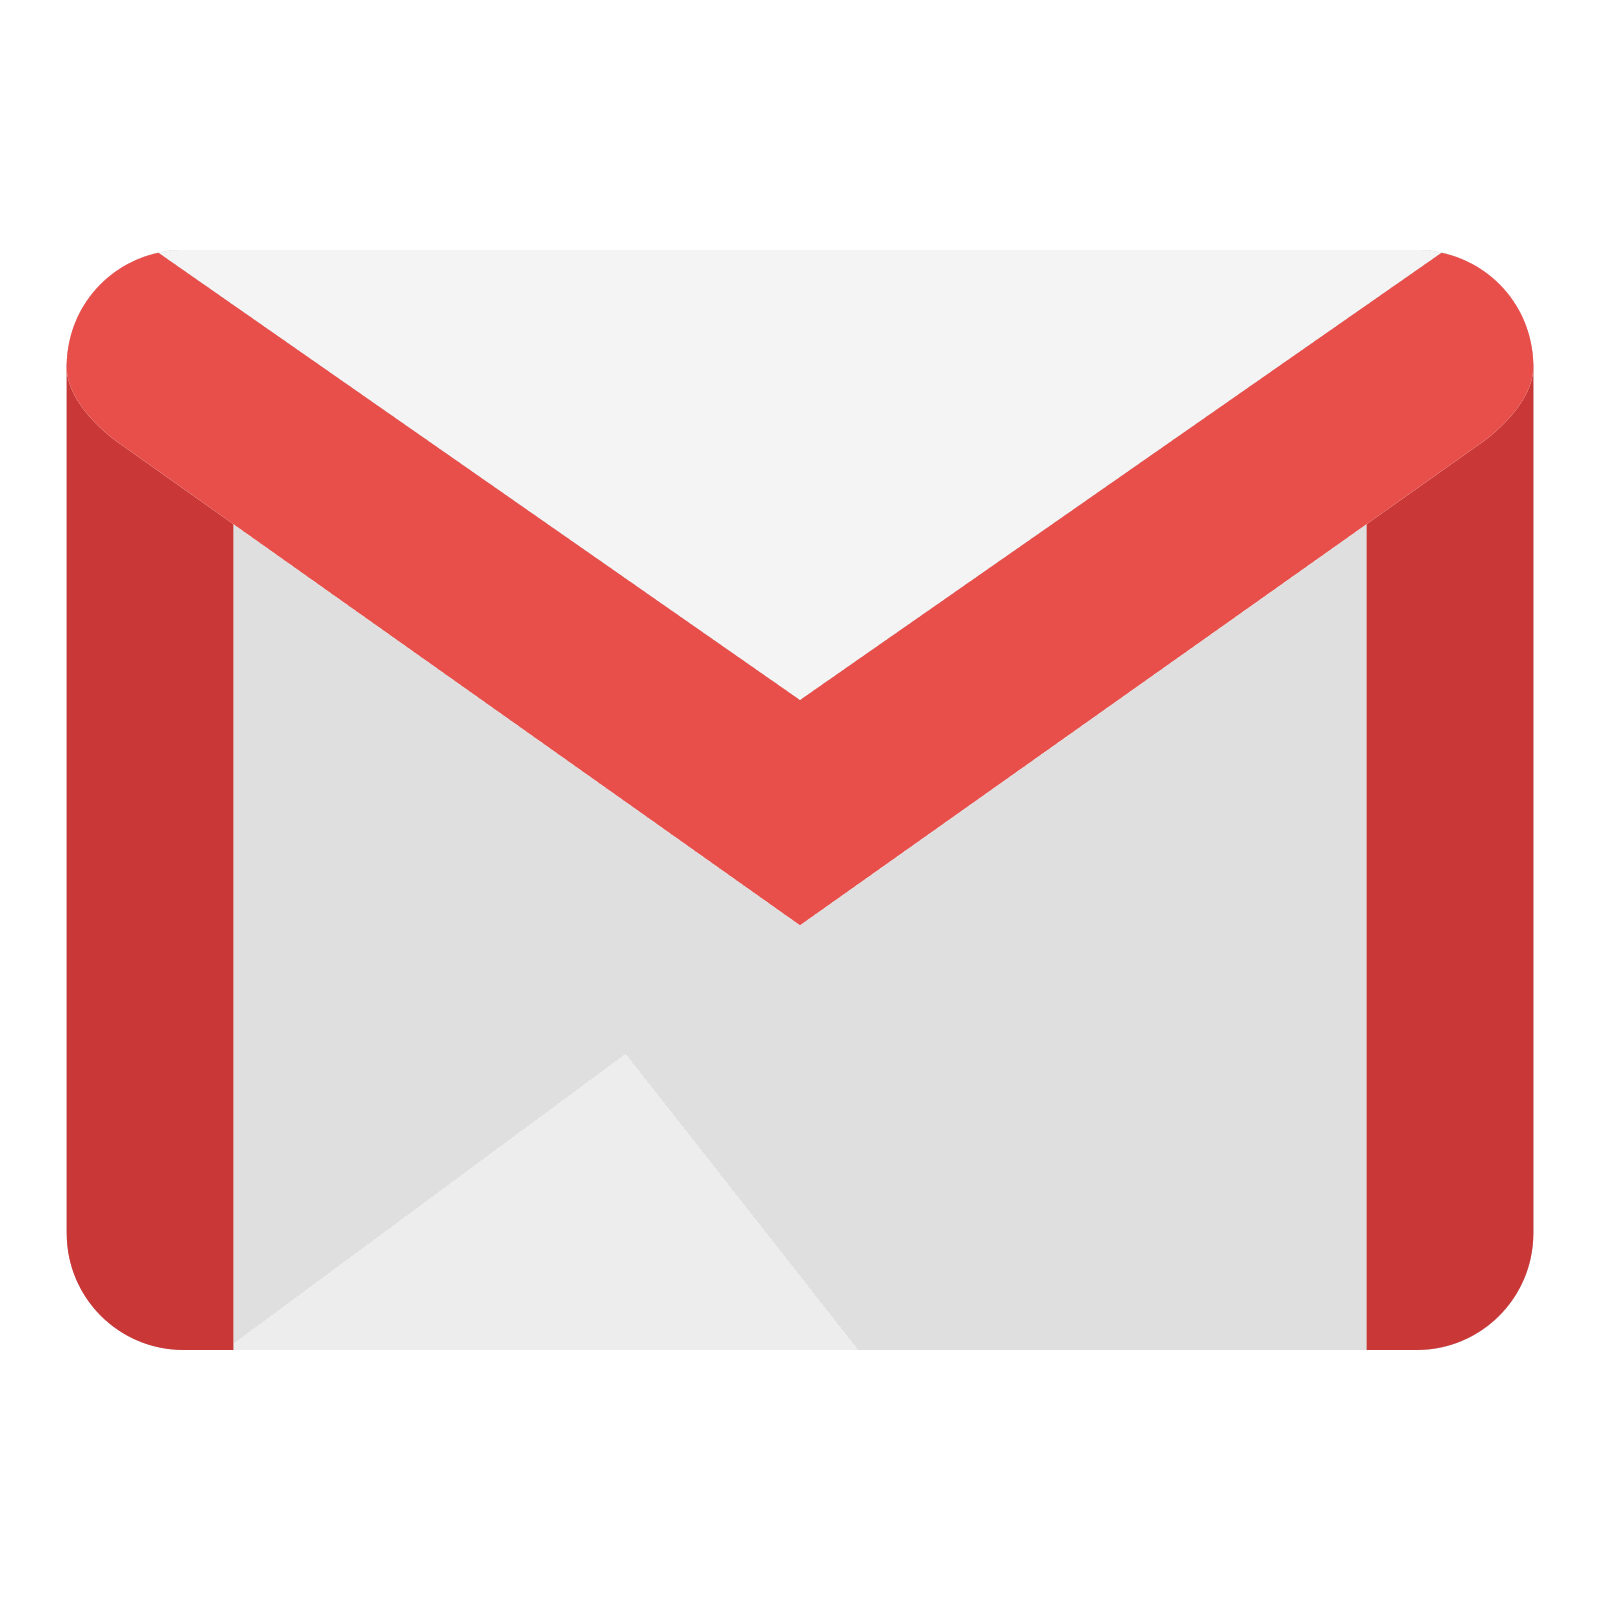 Gmail png transparent background. Icon free download and